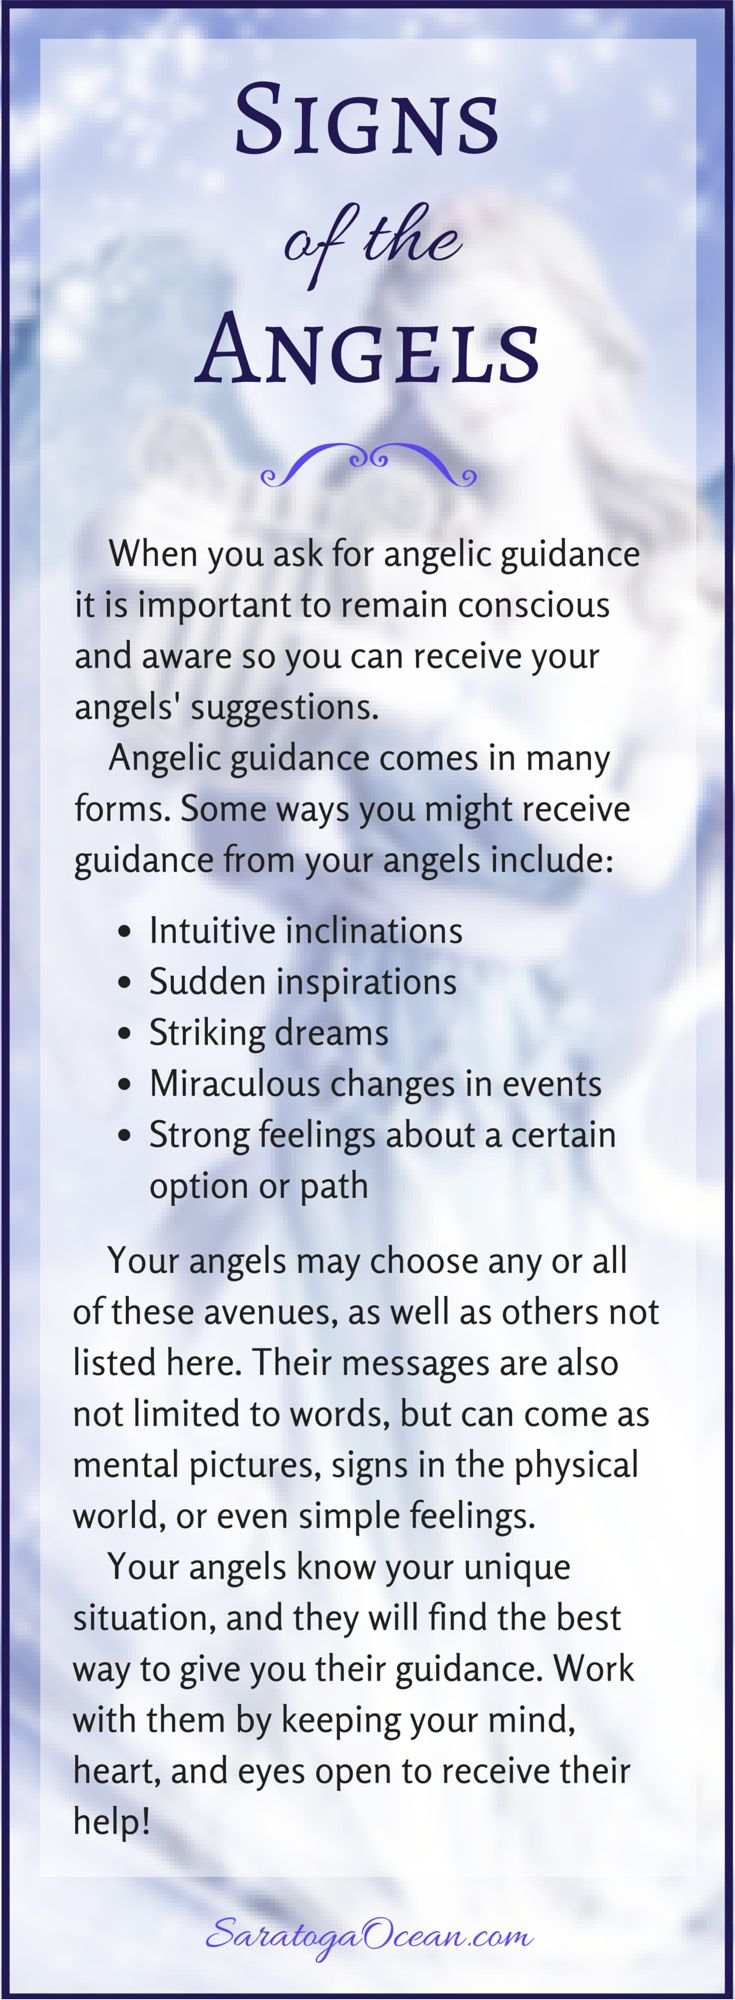 How can you tell if your angels are trying to give you a message? Angelic guidance can come in many different ways. It's always important if you ask for angelic assistance, to stay open and aware so you can receive their answers.